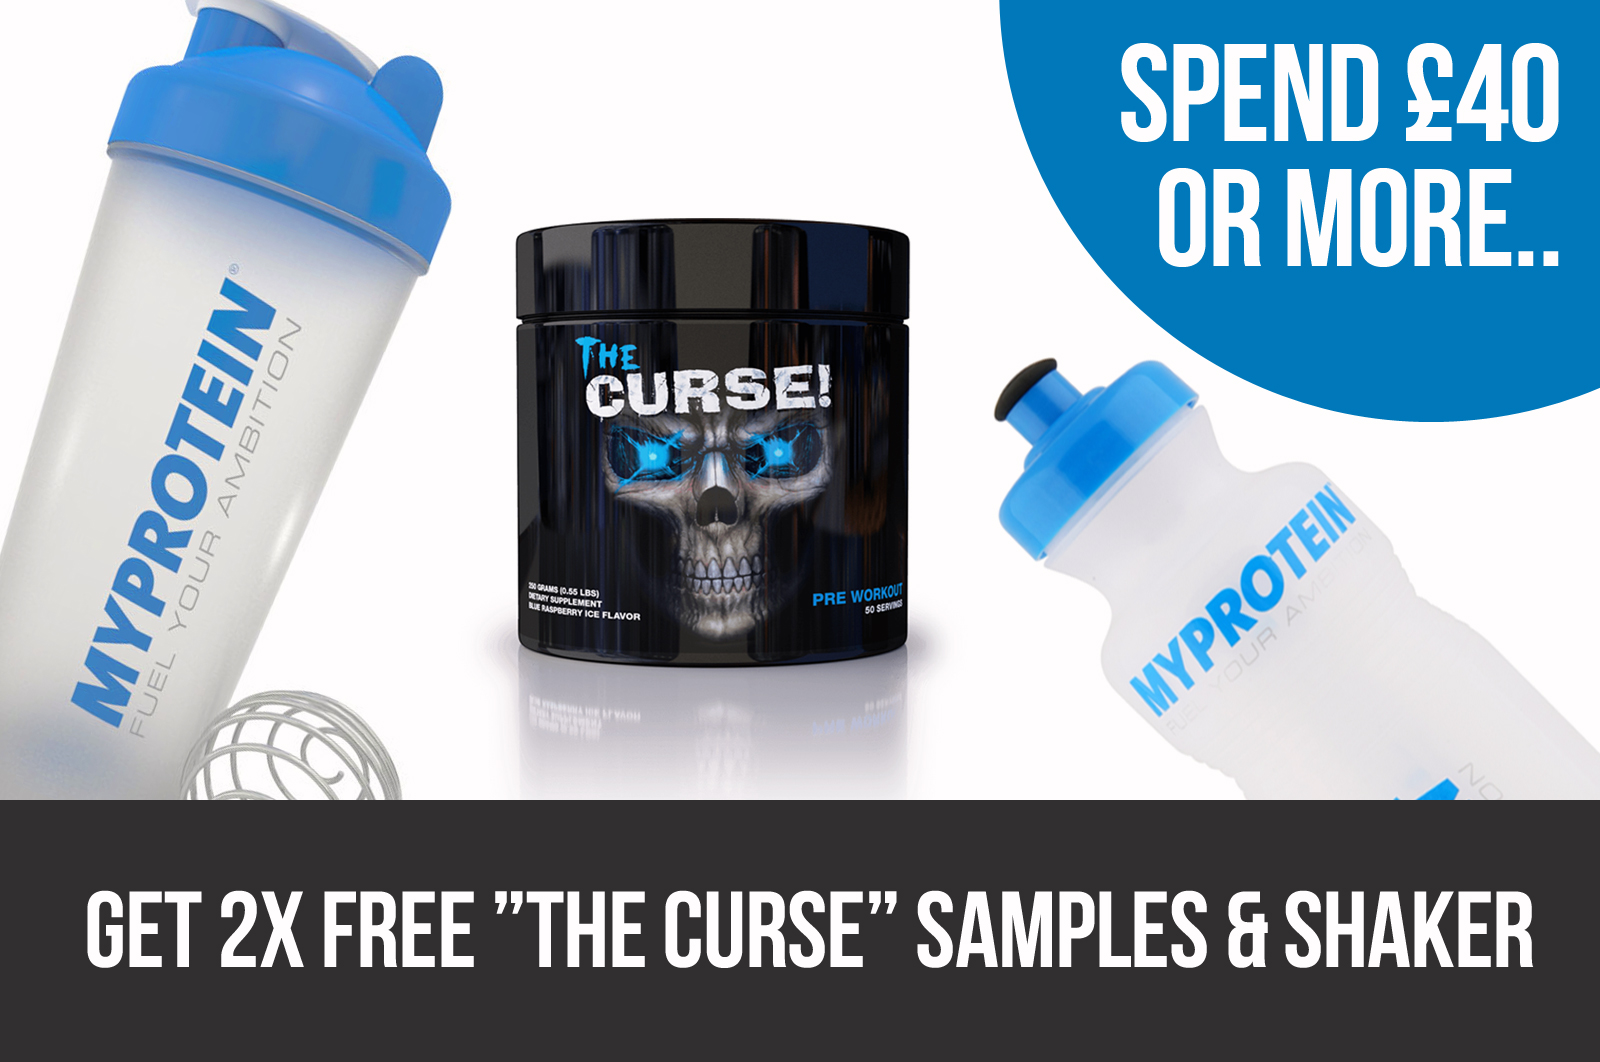 2015-12-15-Newsletter-Supp-Offers-re-Free-Shaker